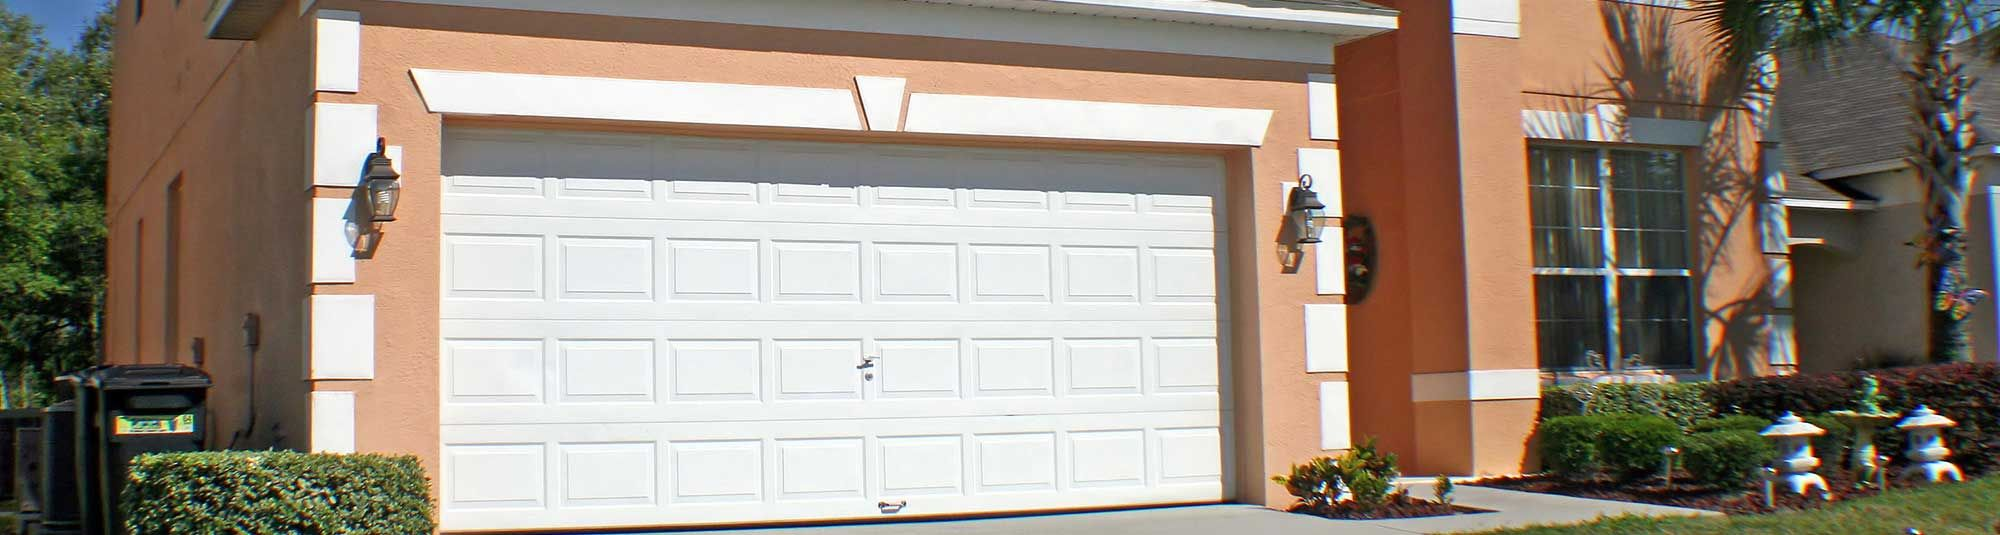 Hire Authority Garage Doors Is South Florida S Premier Garage Door Service And Sales Provider Company Garage Door Installation Garage Doors Garage Service Door